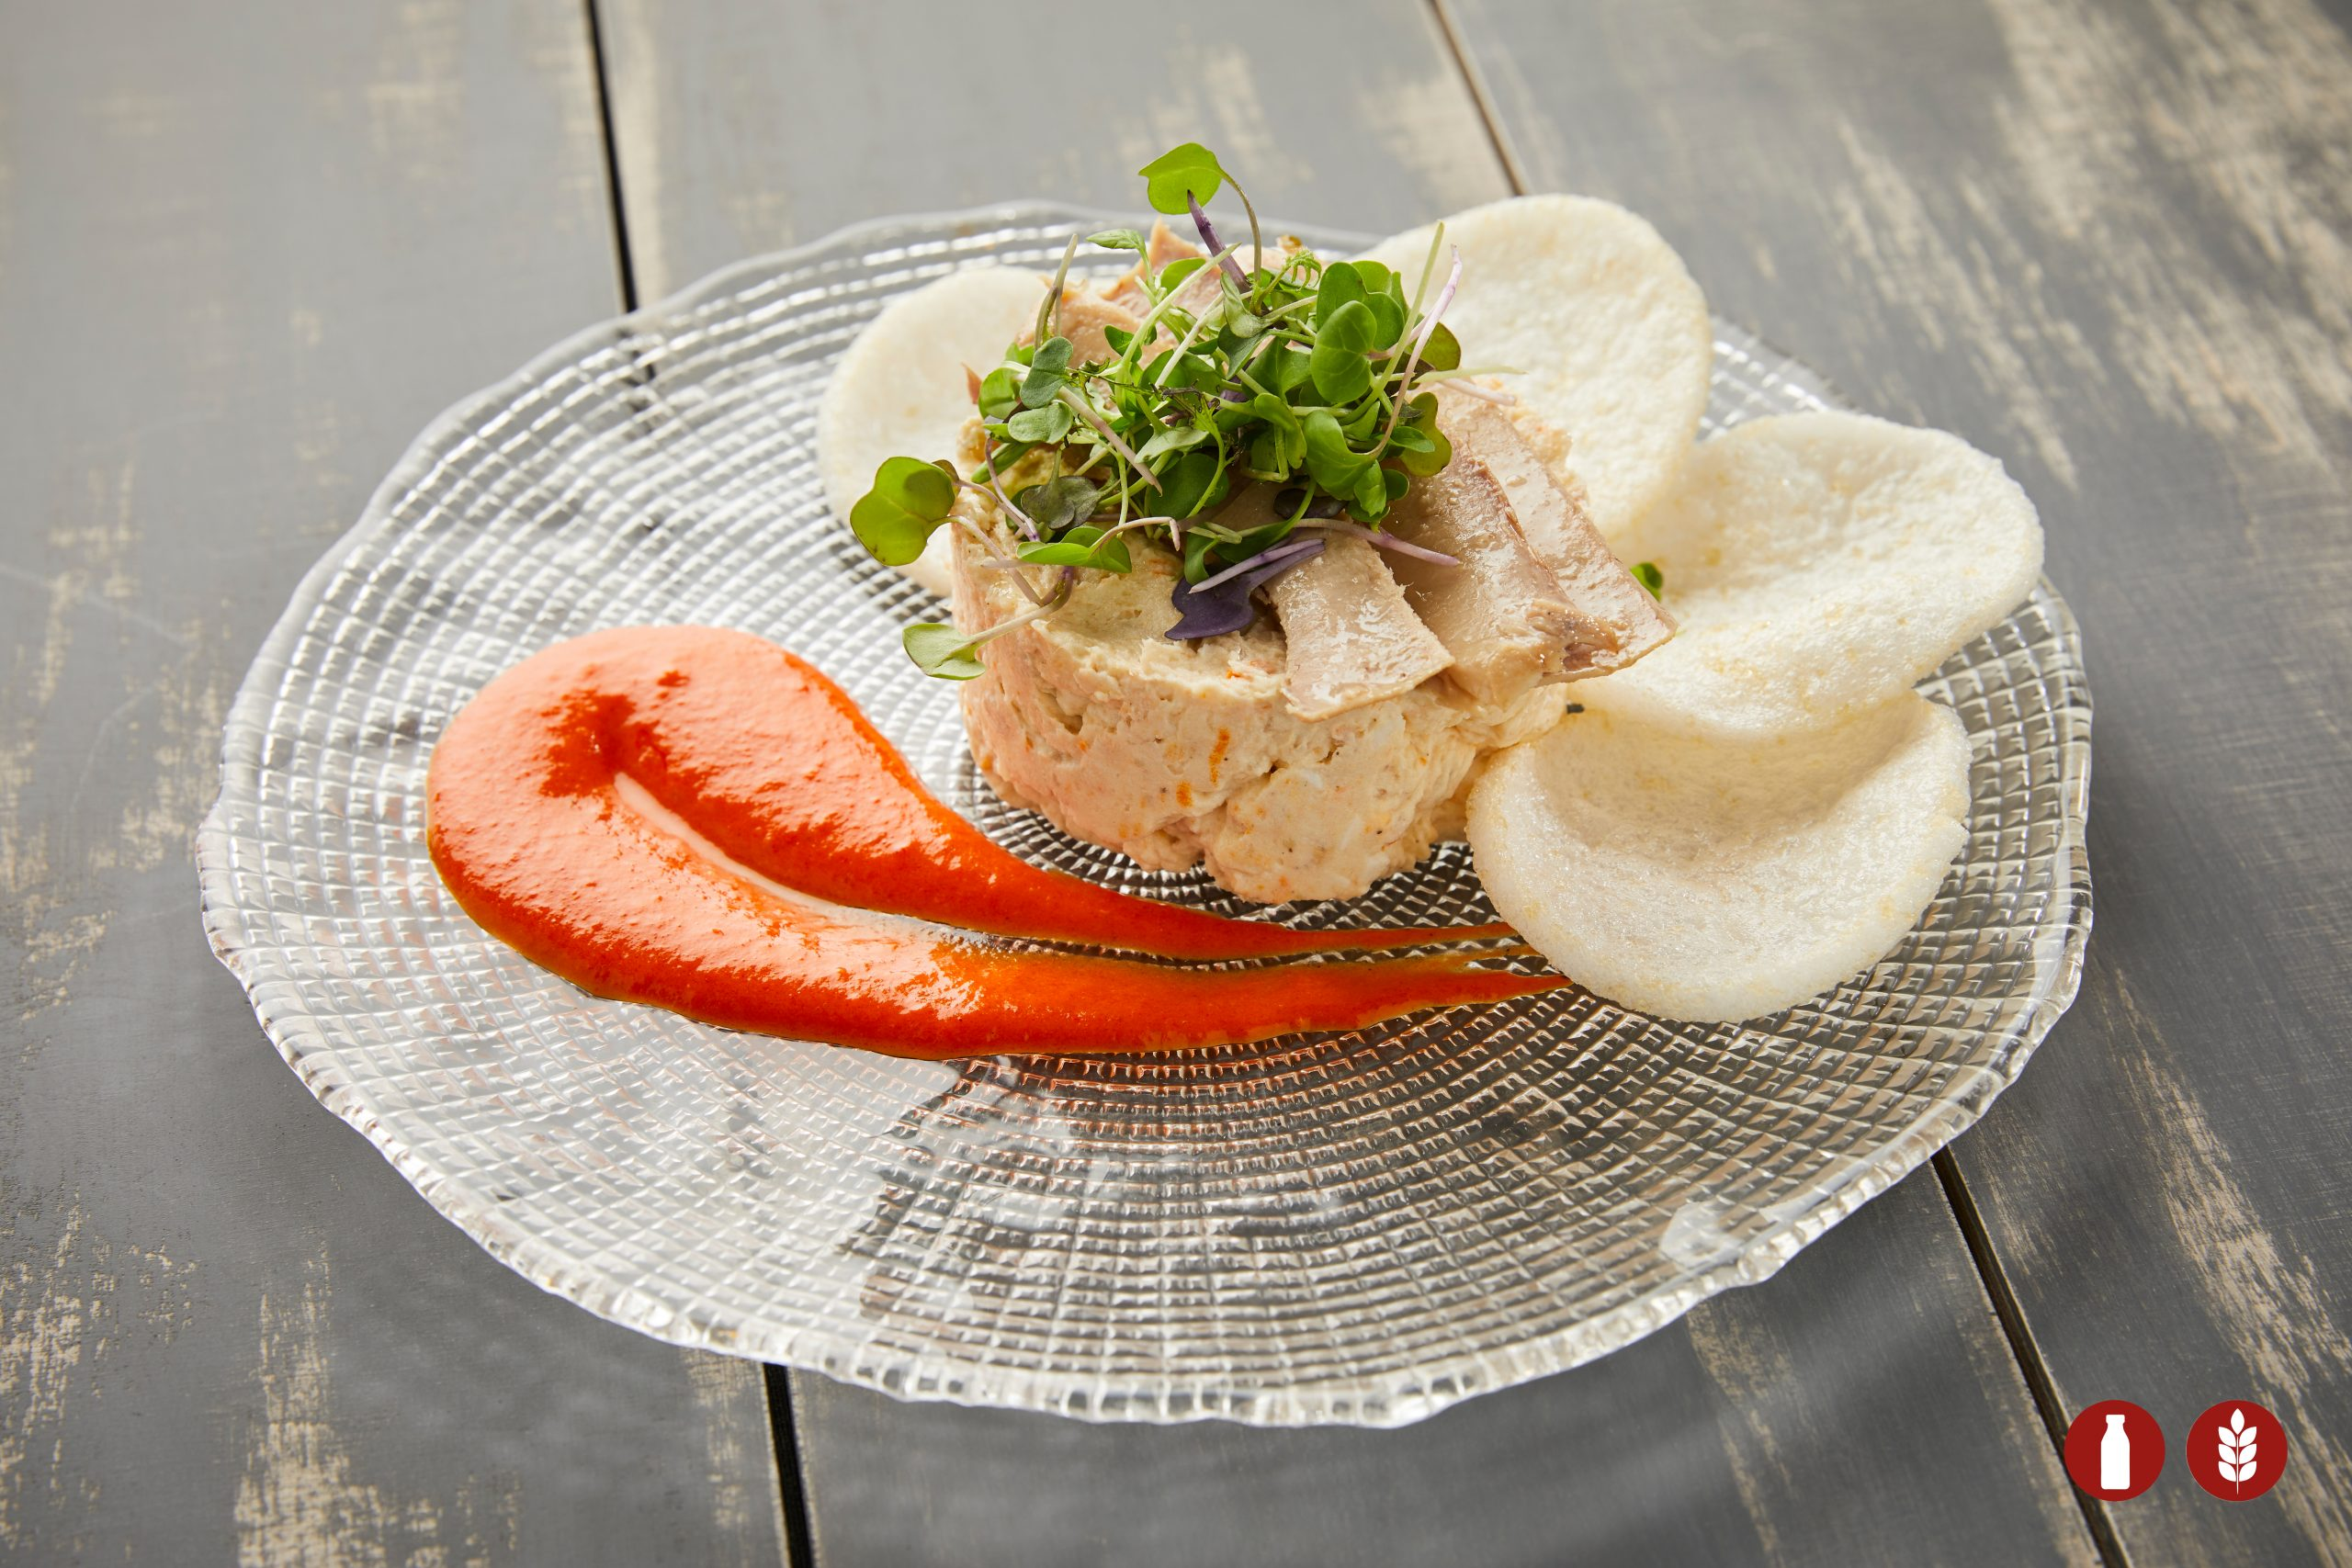 POTATO SALAD WITH TUNA BELLY